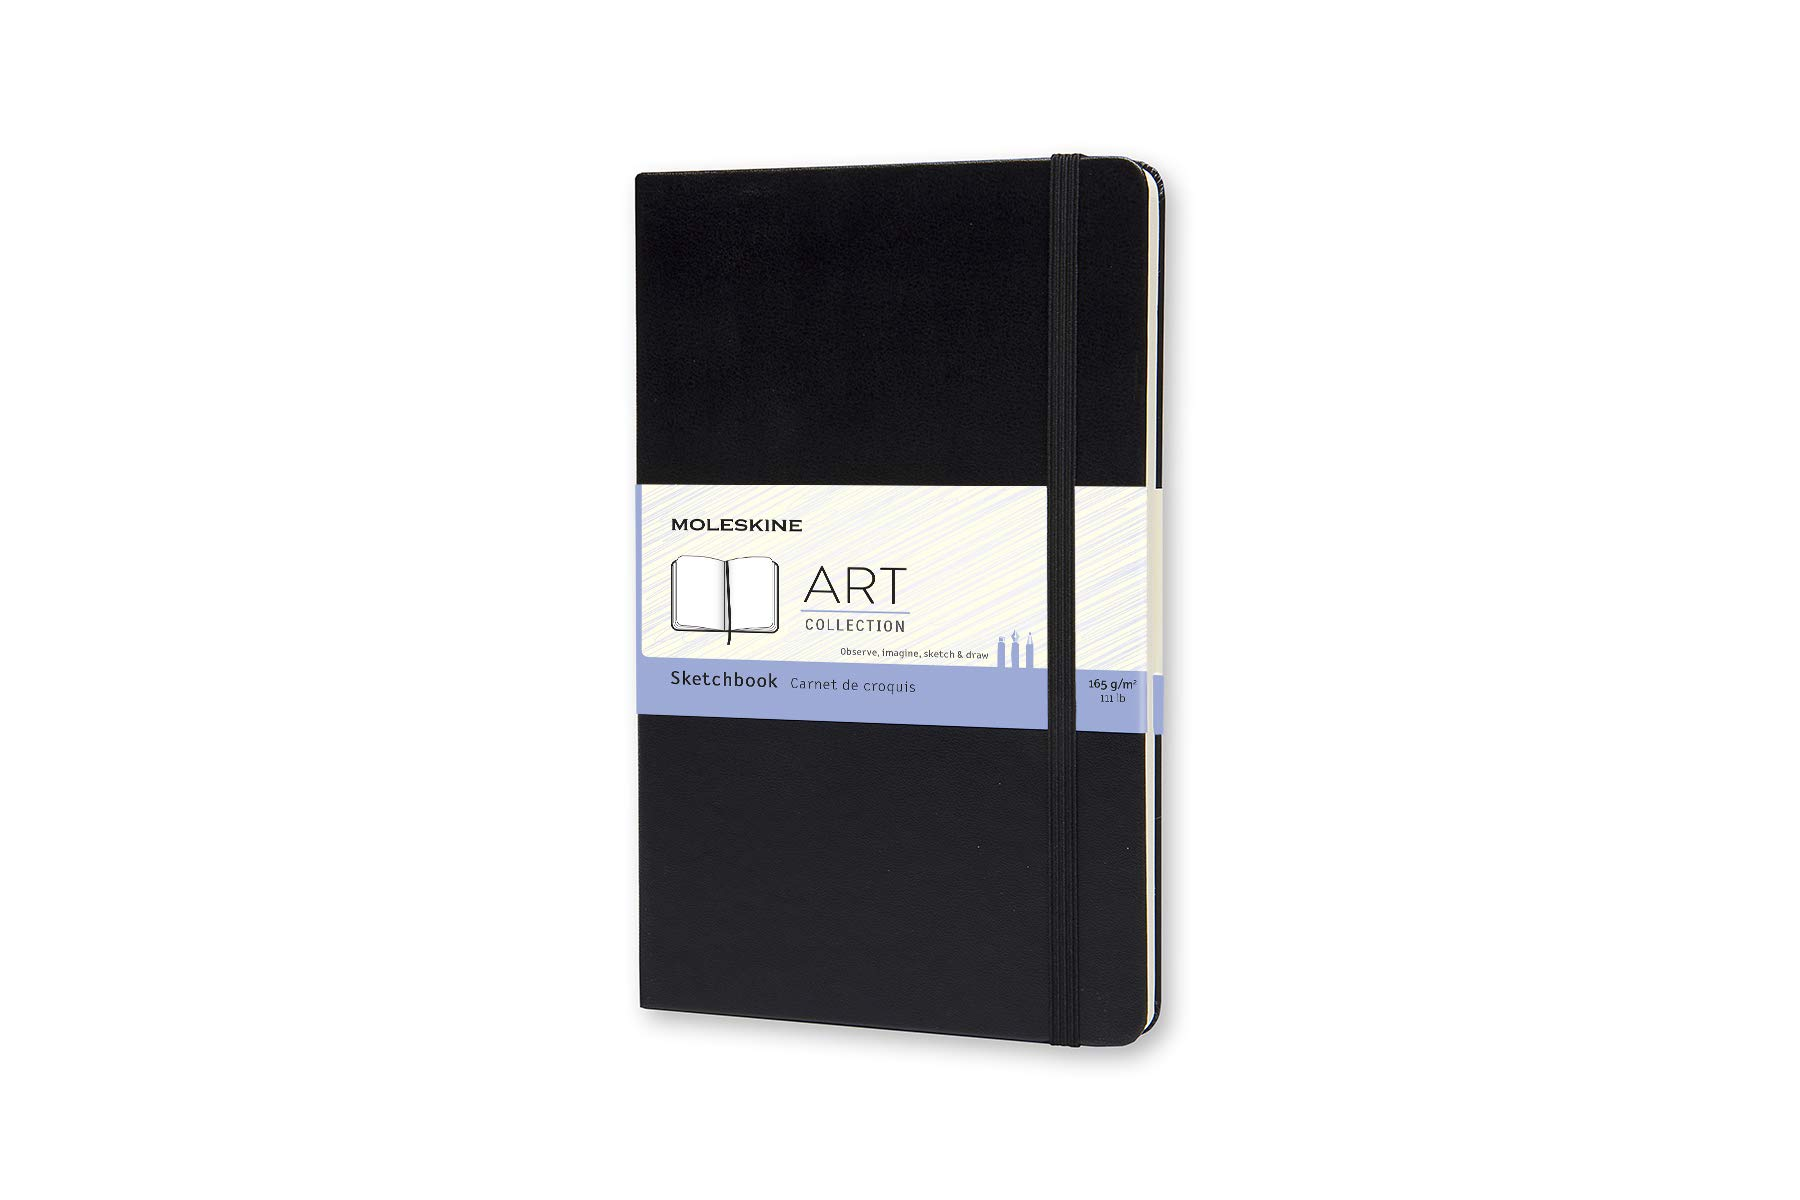 Moleskine Art Plus Hard Cover Sketchbook, Plain, Large (5 x 8.25) Black - Sketch Pad for Drawing, Watercolor Painting, Sketchbook for Teens, Artists, Students